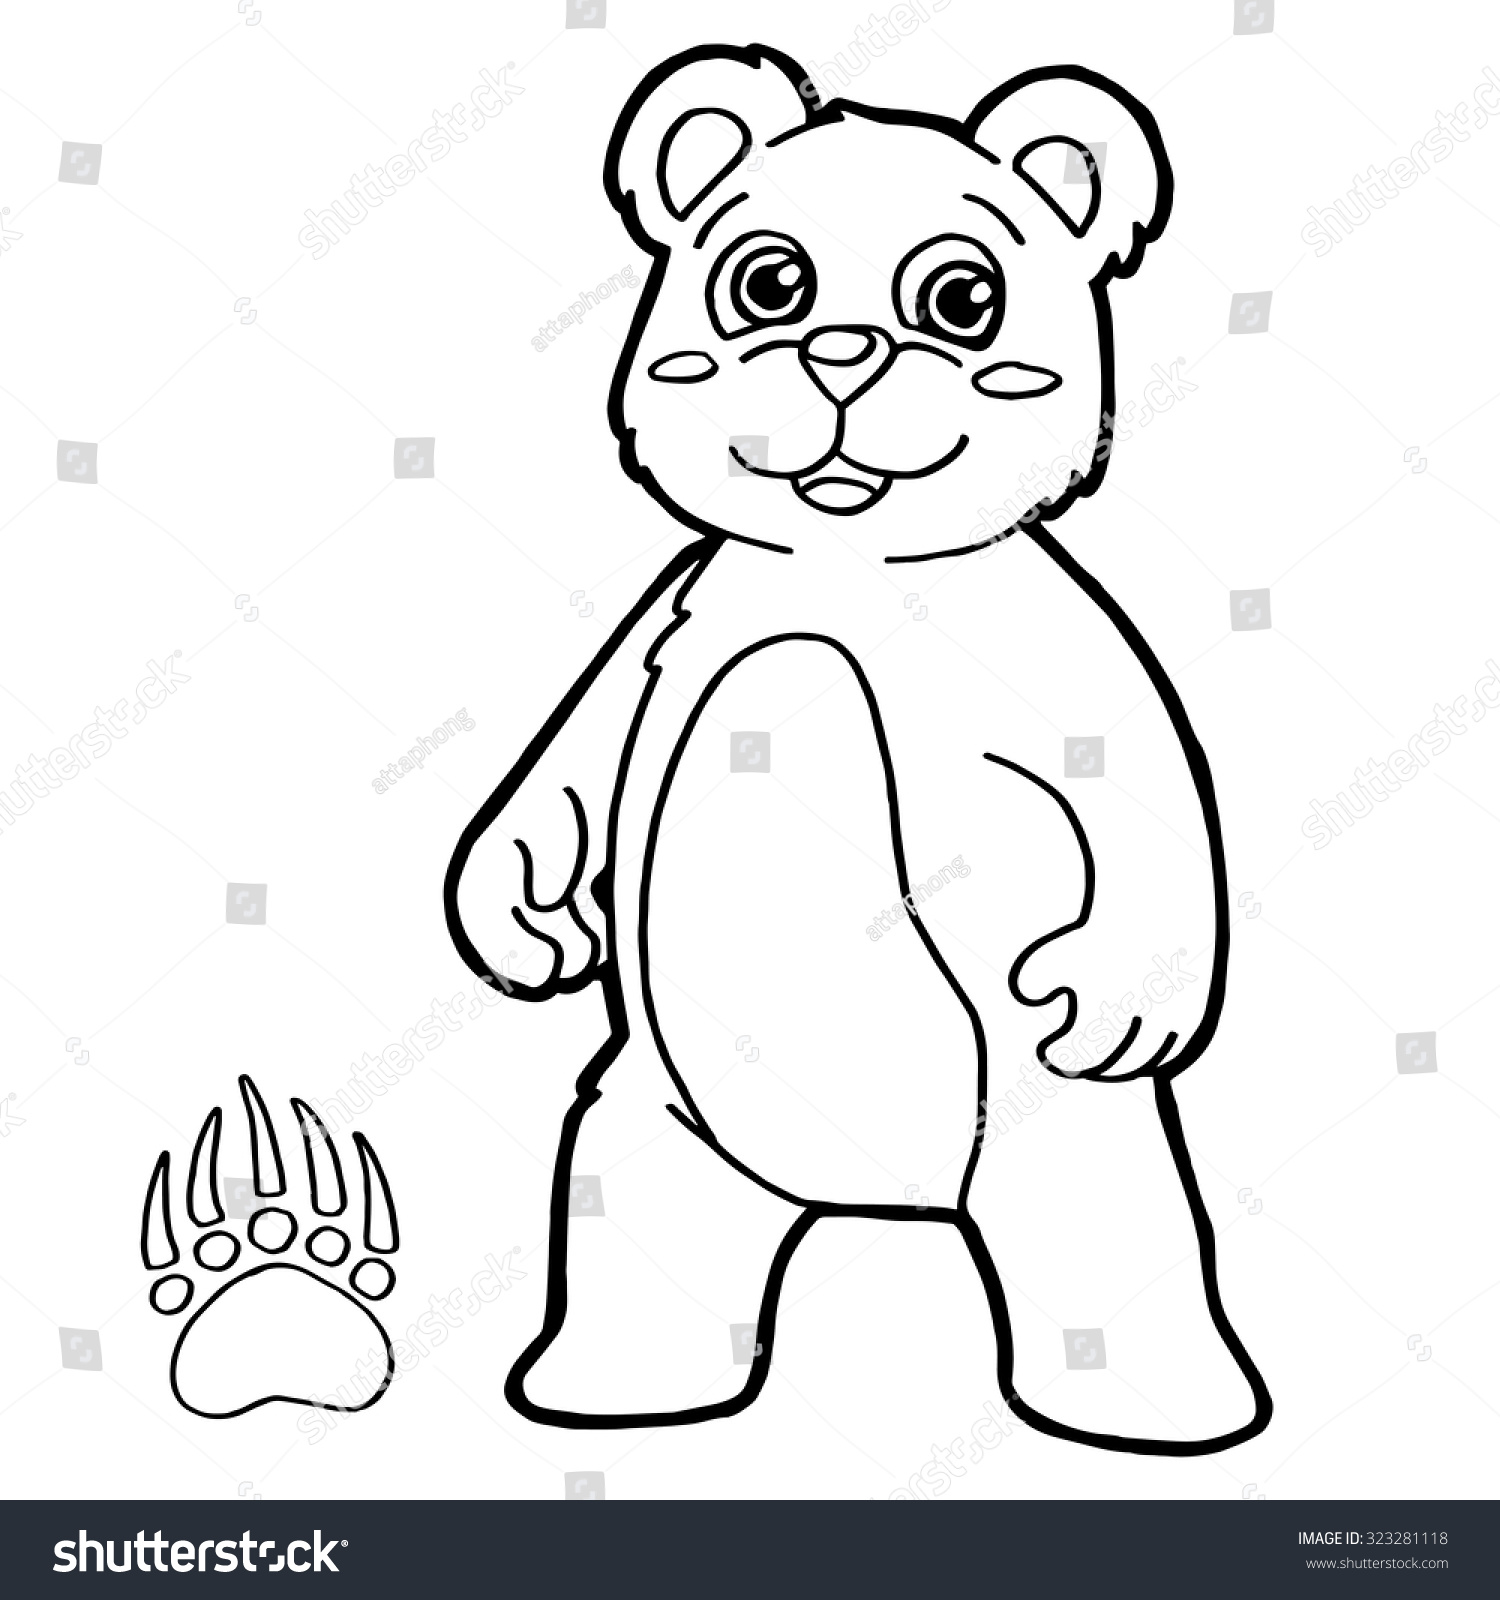 Bear Paw Print Coloring Page Vector Stock Vector HD (Royalty Free ...